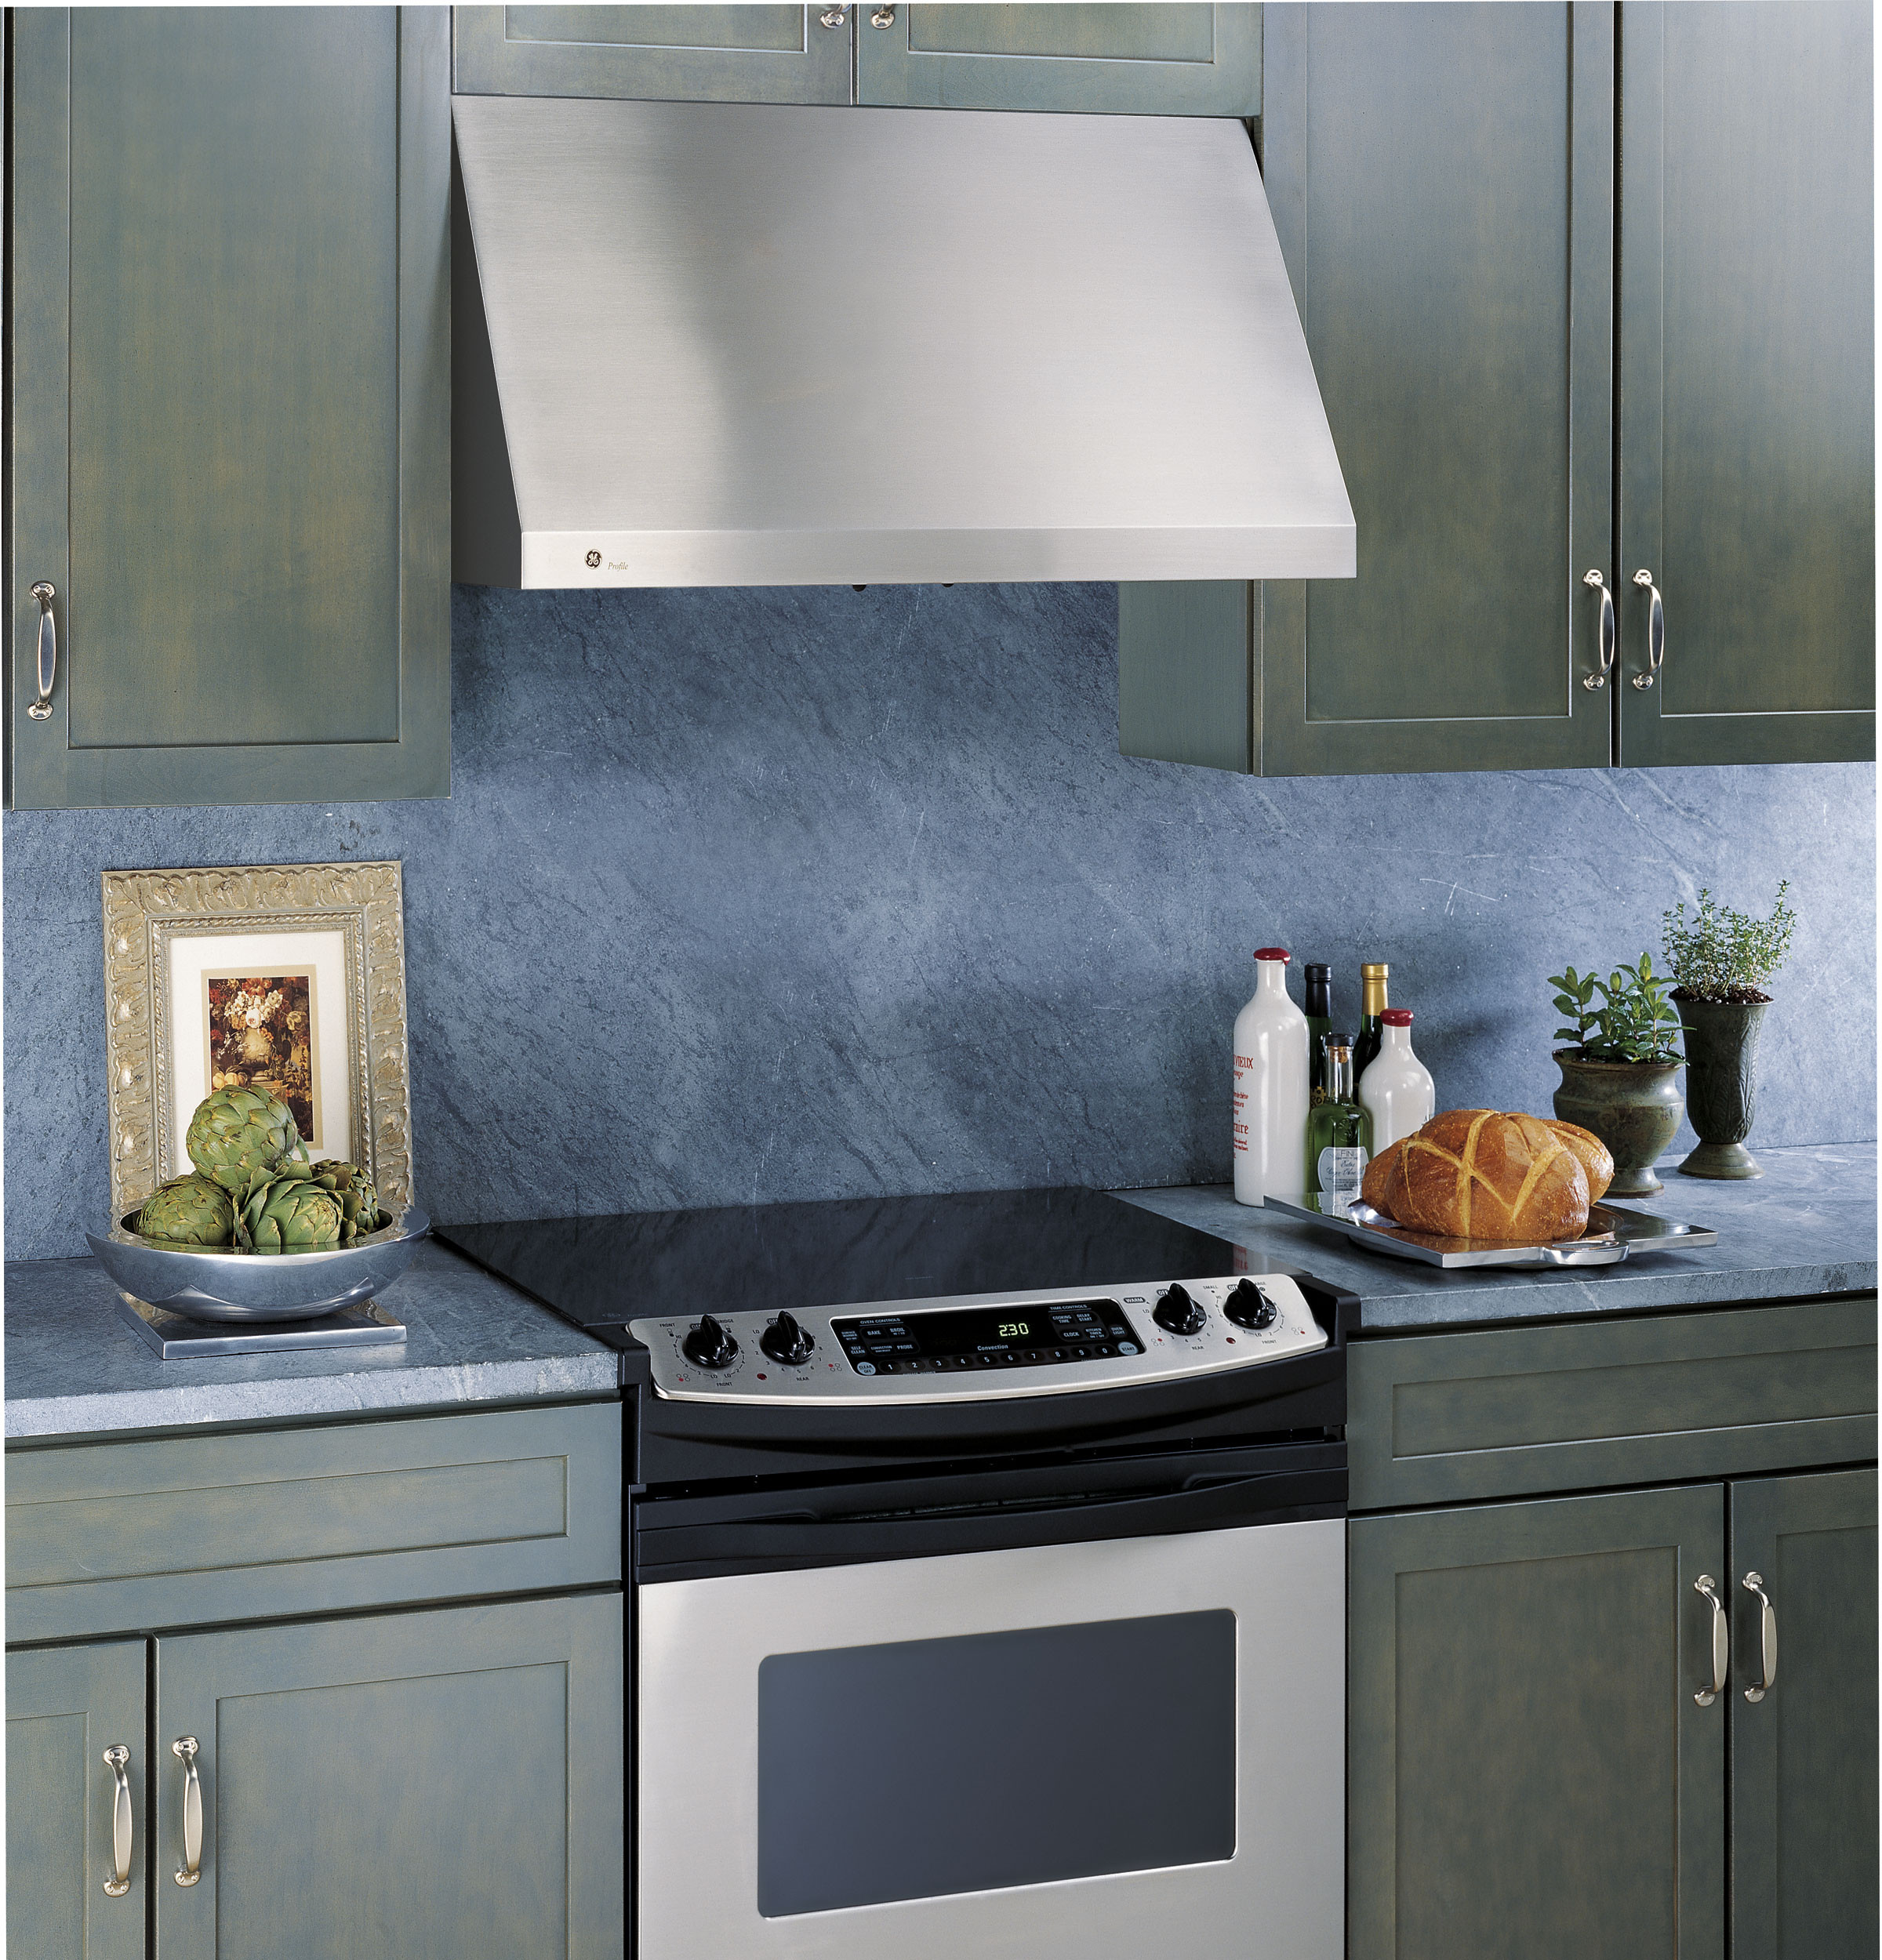 Ge Jv936dss 30 Inch Wall Mount Range Hood With 600 Cfm Blower Hidden Controls Four Speed Fan Control And Halogen Cooktop Lights Stainless Steel